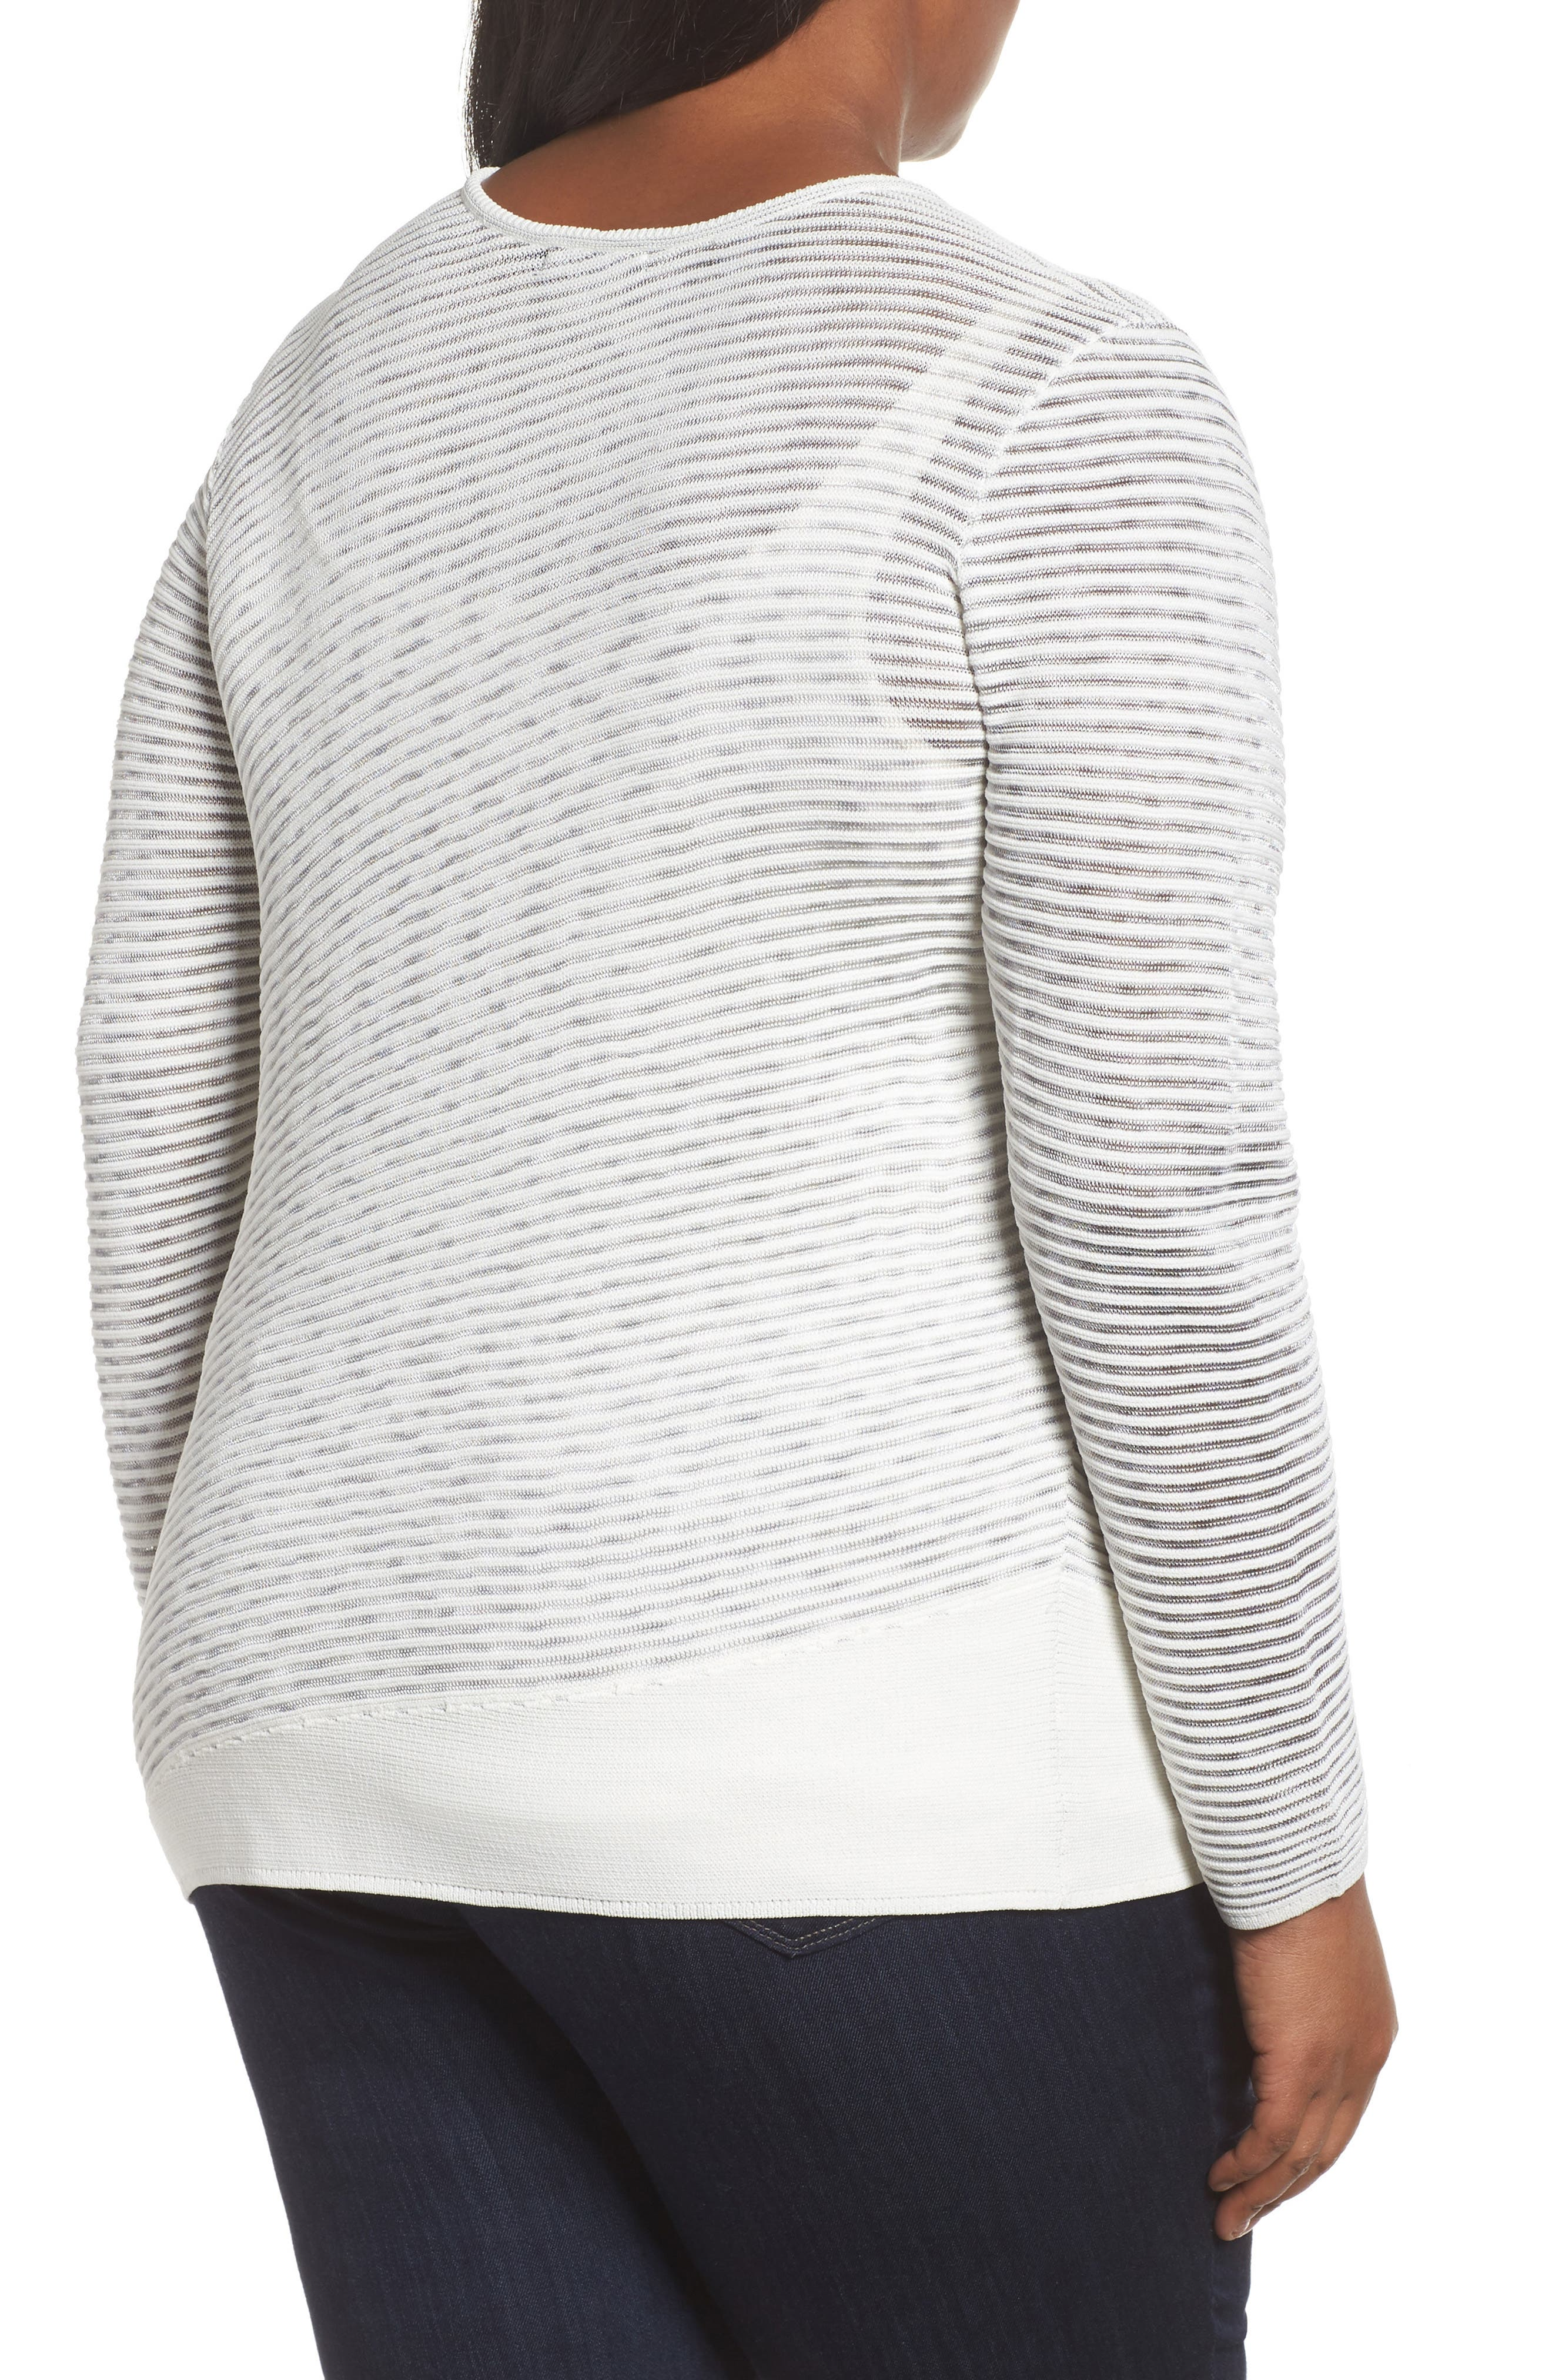 This Is Living Knit Top,                             Alternate thumbnail 3, color,